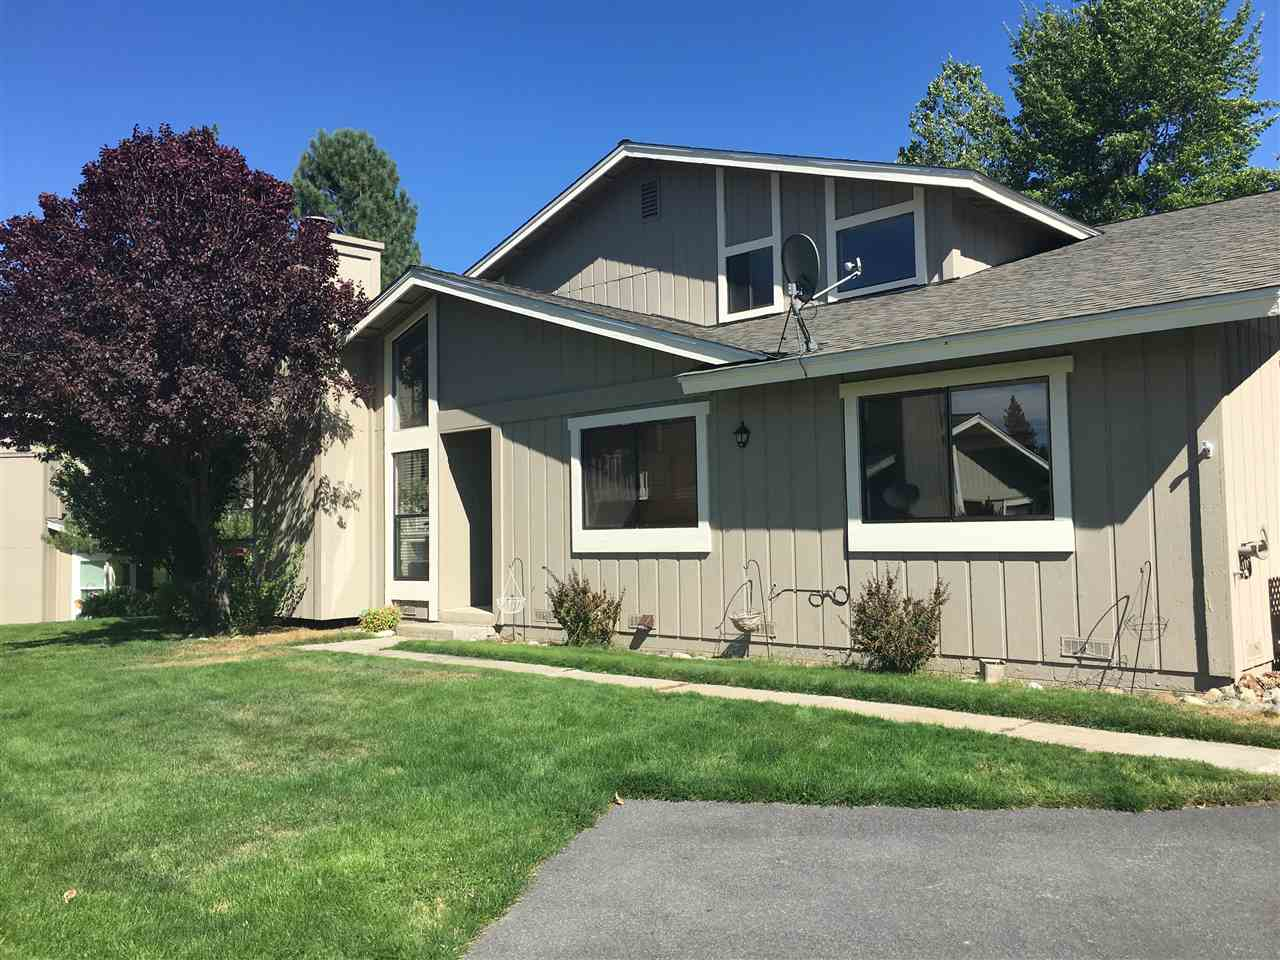 Condo / Townhouse for Active at 46 Aspen Circle 46 Aspen Circle Blairsden, California 96103 United States